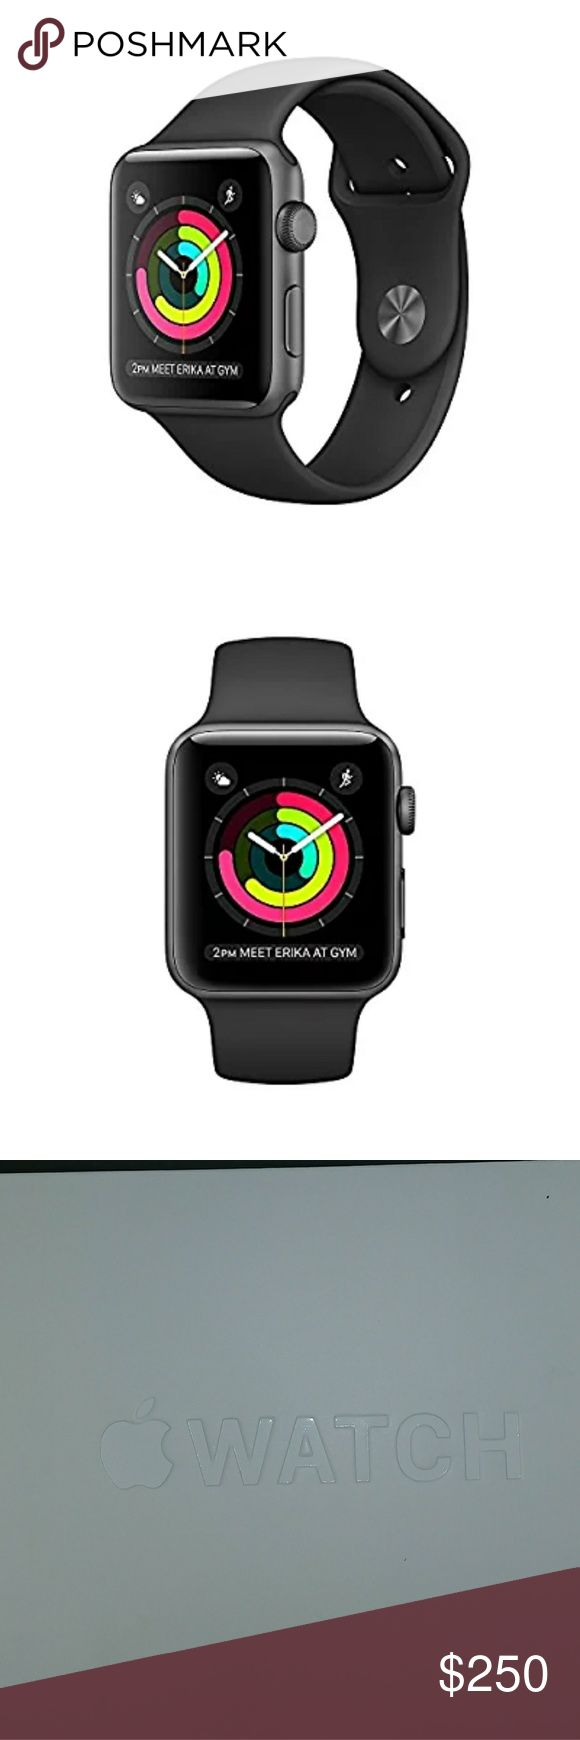 Apple Watch Series2 *Brand new in box Apple Watch Series 2 *42mm case Space Gray Aluminum *Black sport band *Comes with Large and Small bands, usb power adapter, magnetic charging cable *No scratches or flaws of any kind Apple Accessories Watches